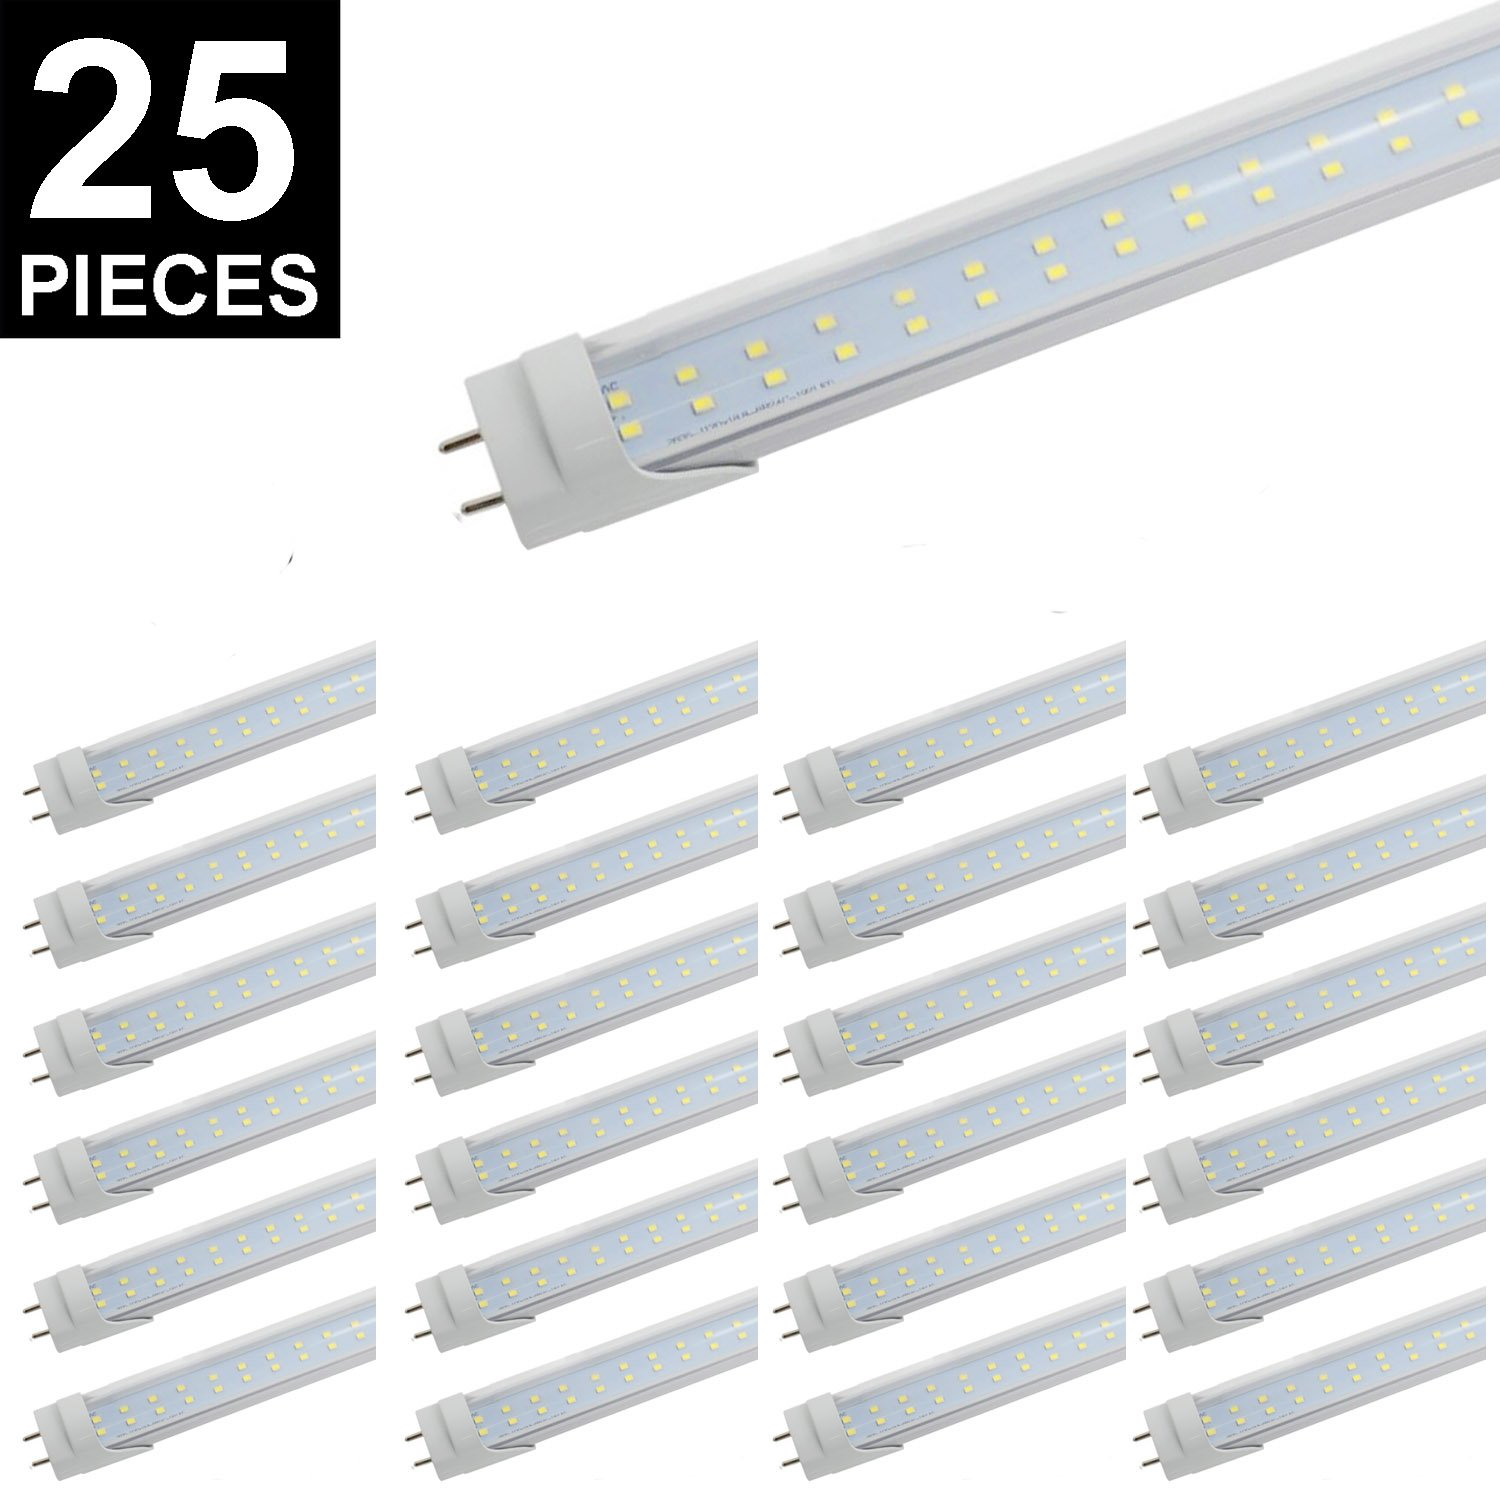 (US STOCK)CNSUNWAY 4ft 28W T8 LED Tube, 48'' G13 Bi-pin Base Light Bulb with Clear Cover, 2800LM 6000K Cool White (6000K Super Bright White, 25-Pack Dual Row)